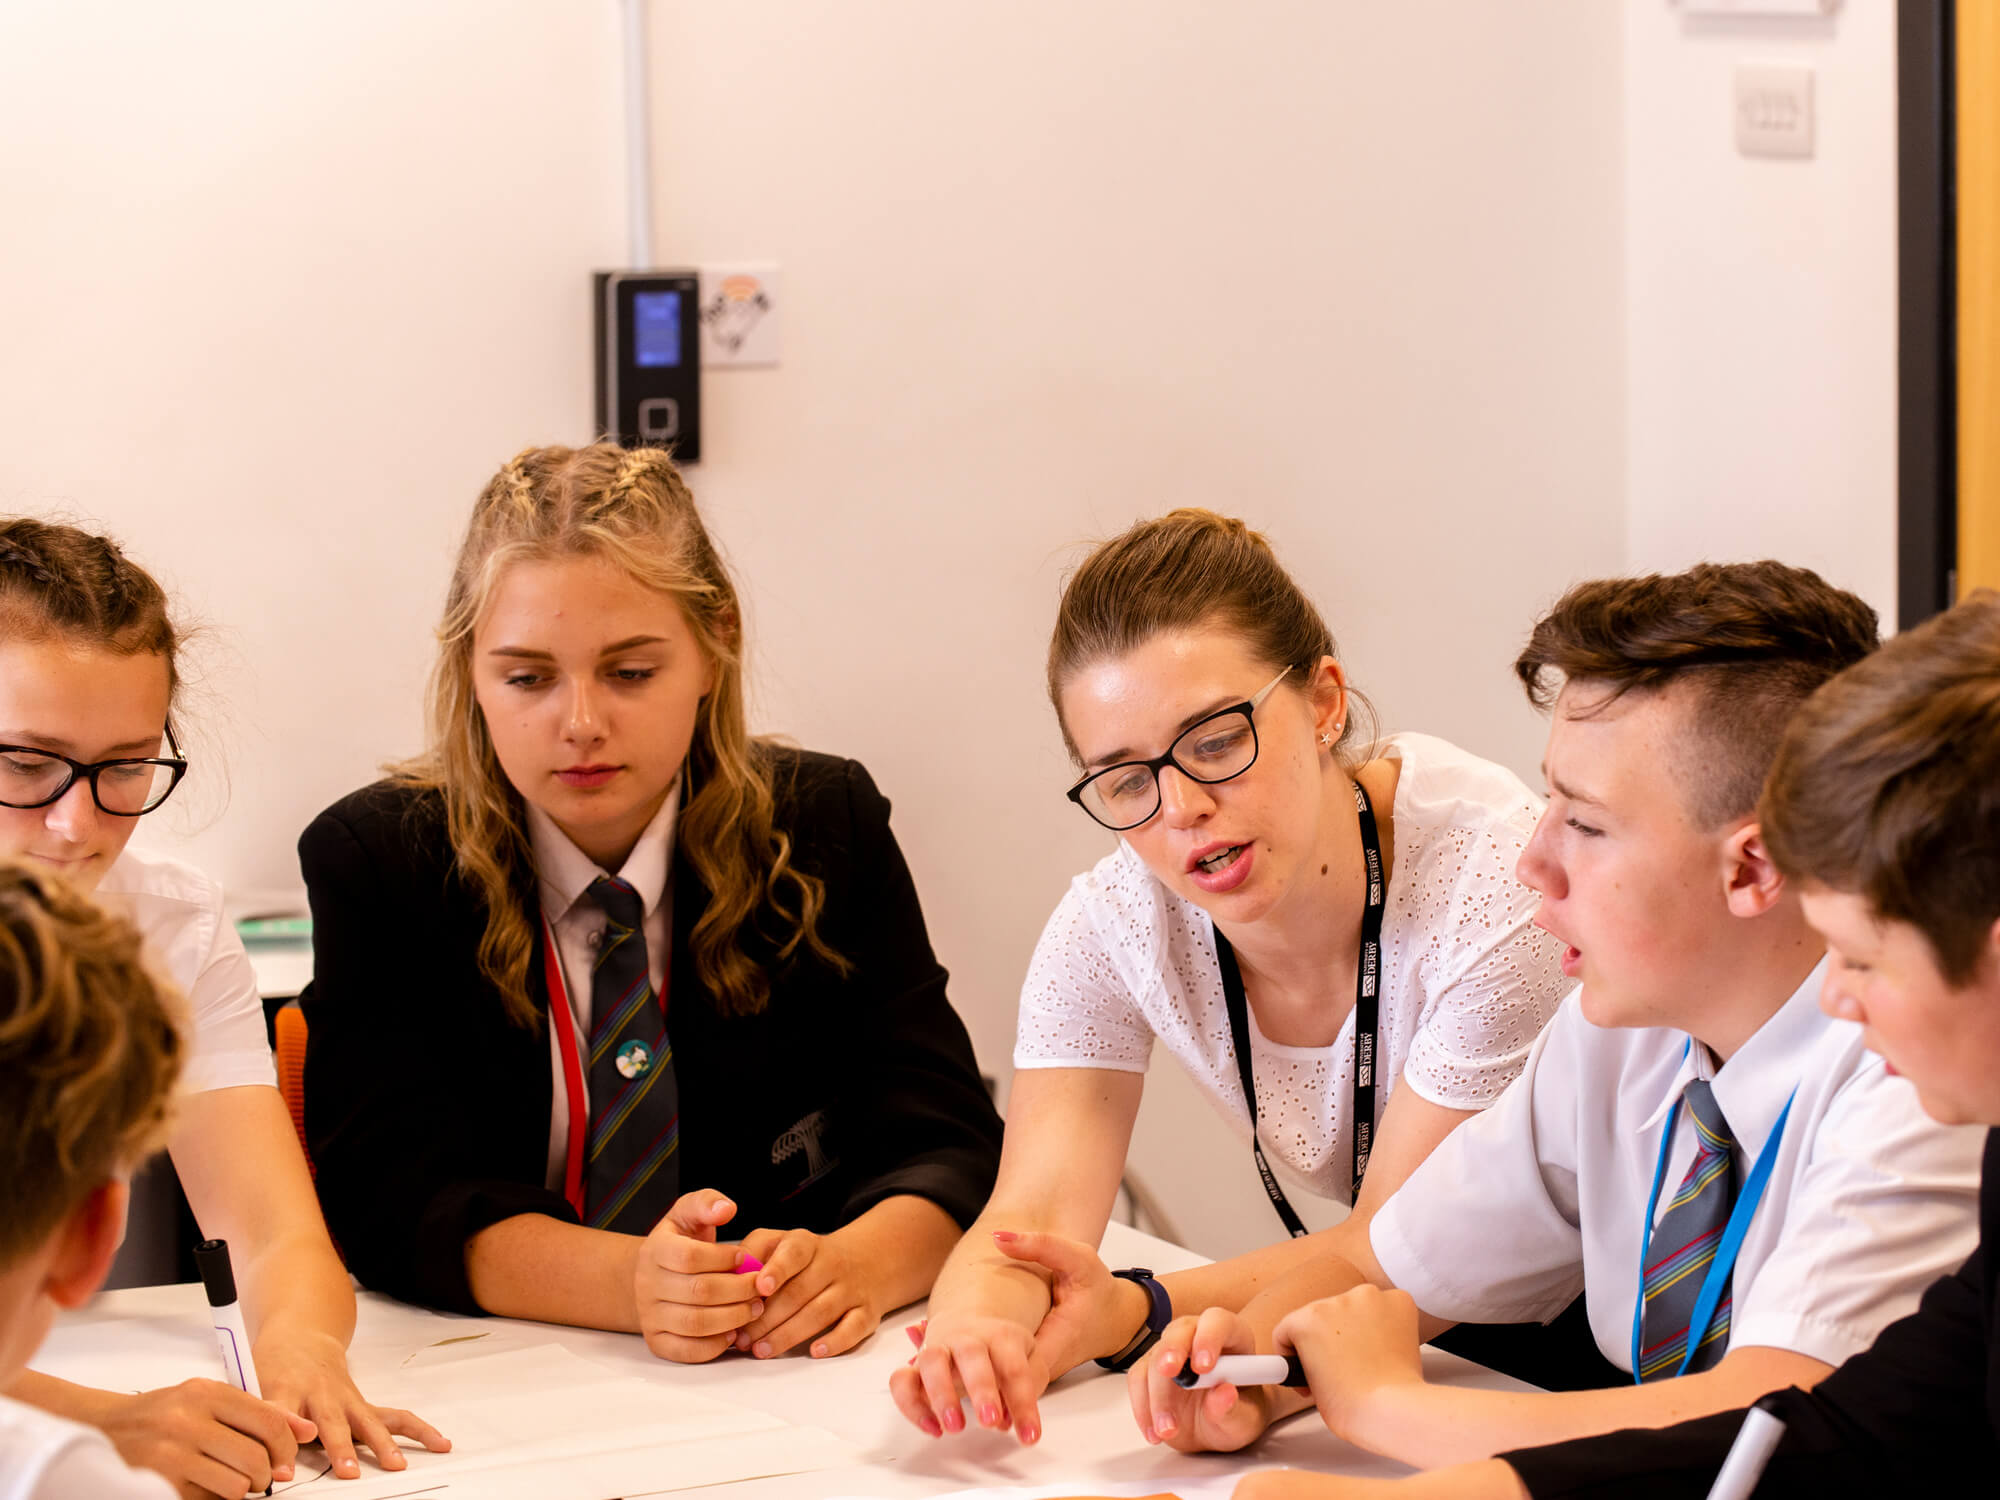 Students sitting round a table engaging in class discussions with the teacher.